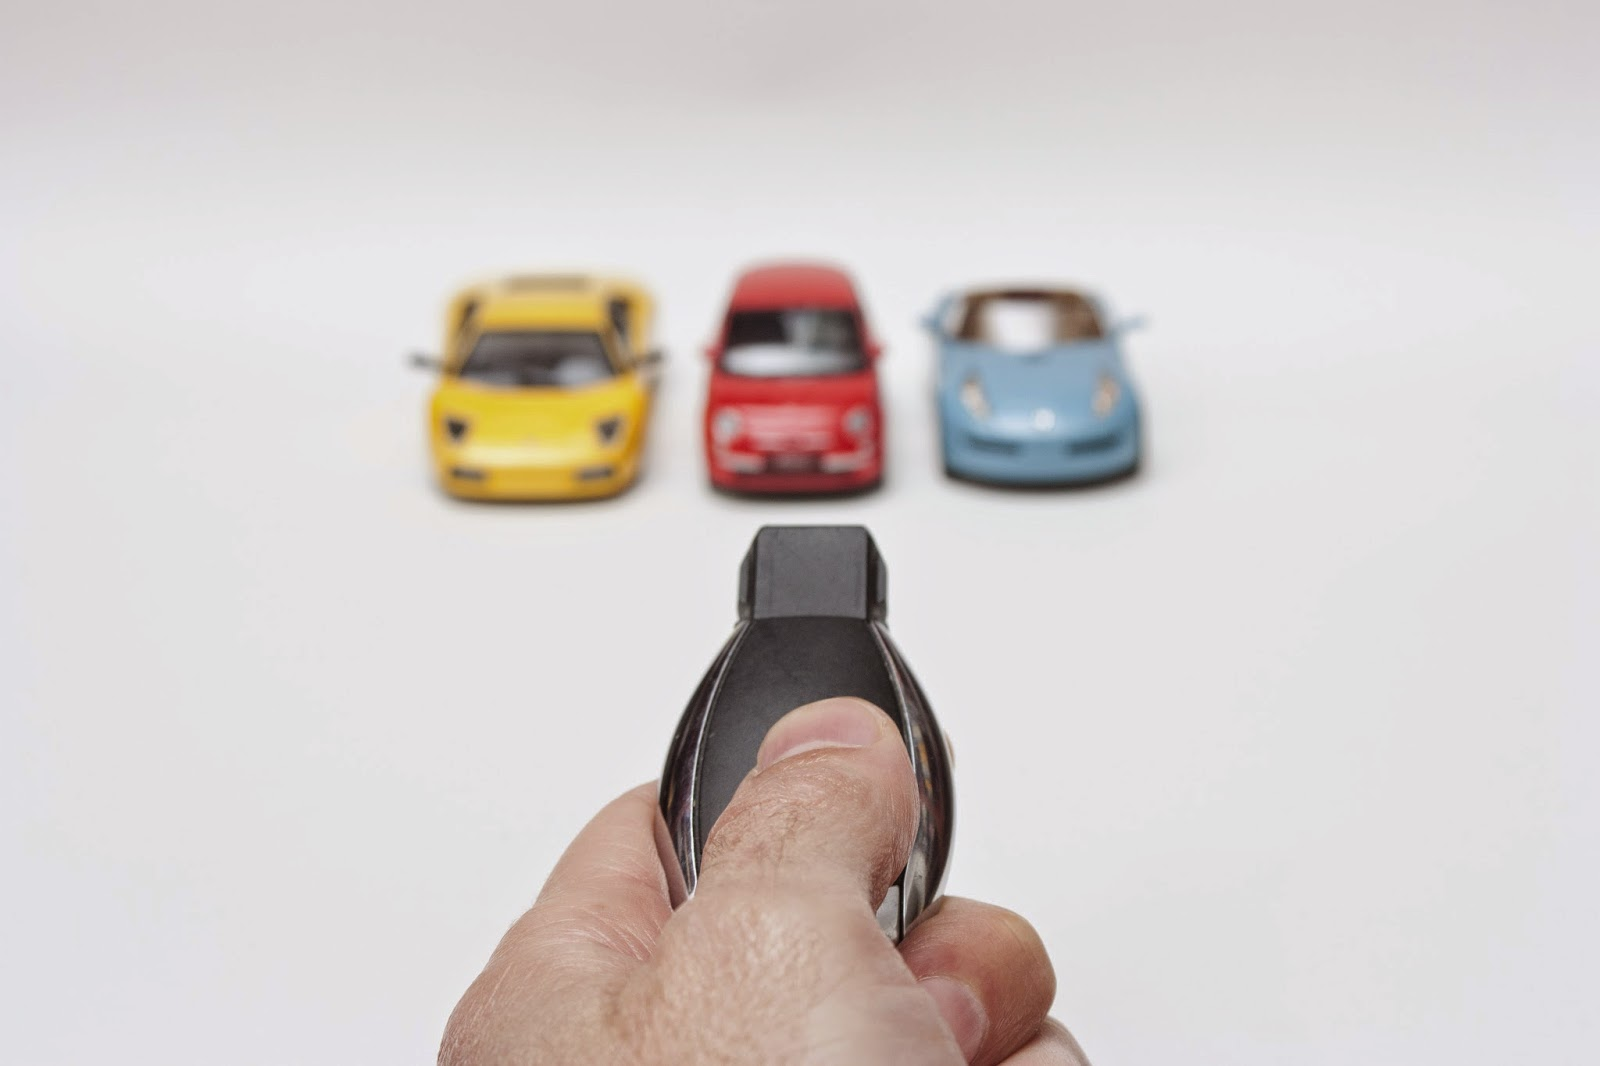 Fleet car key